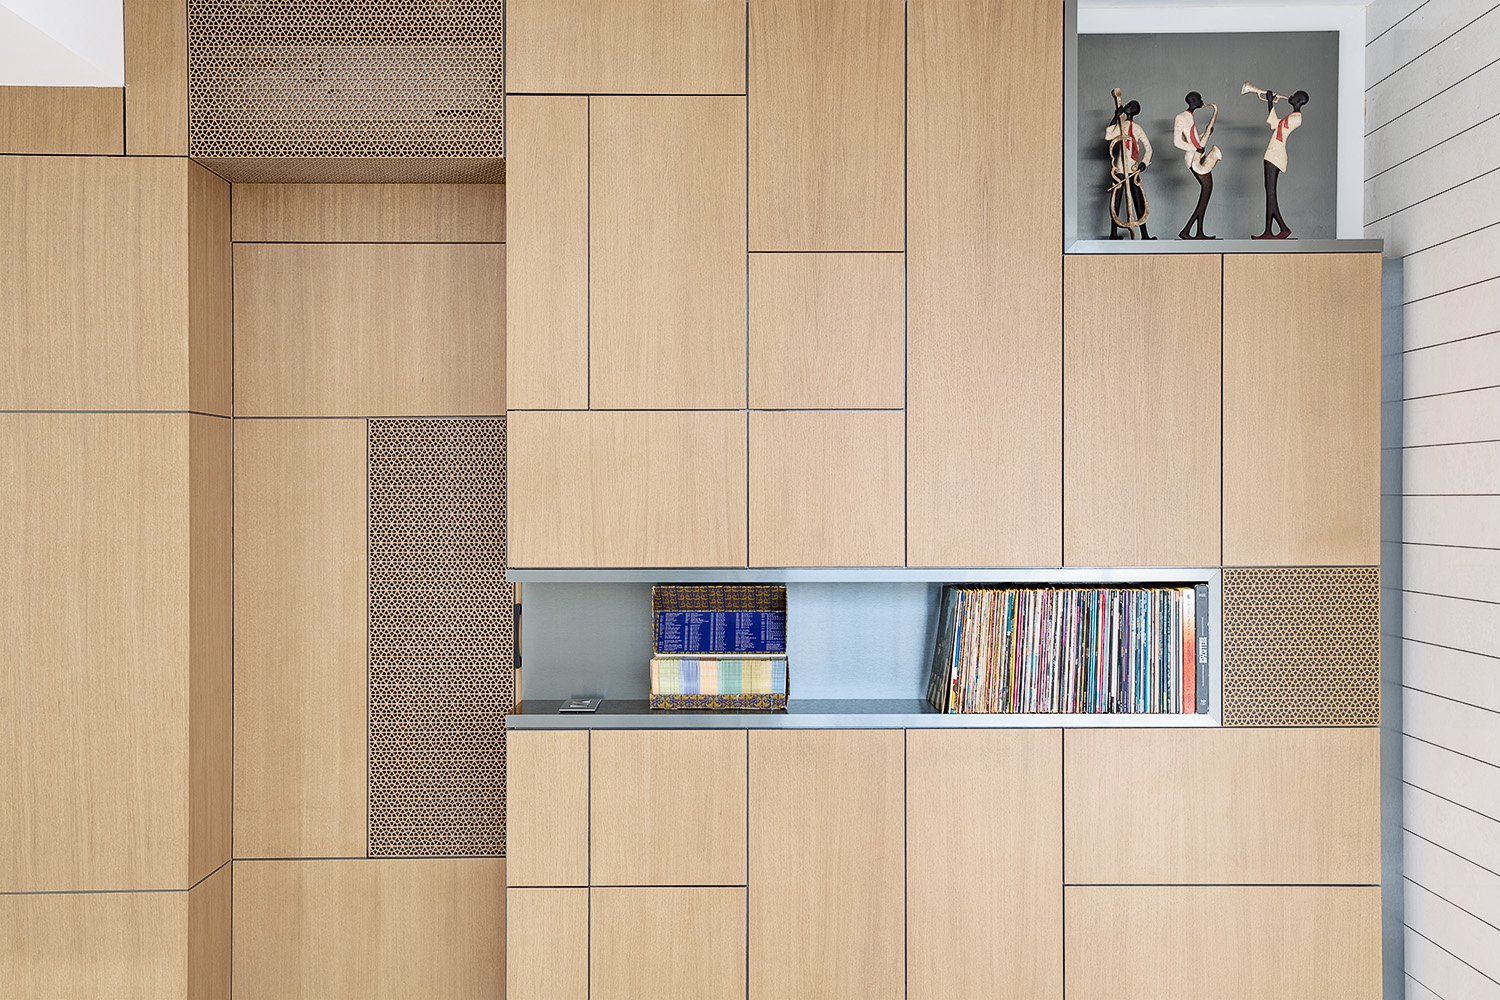 Double Skin Wall - Roula Assaf Architects